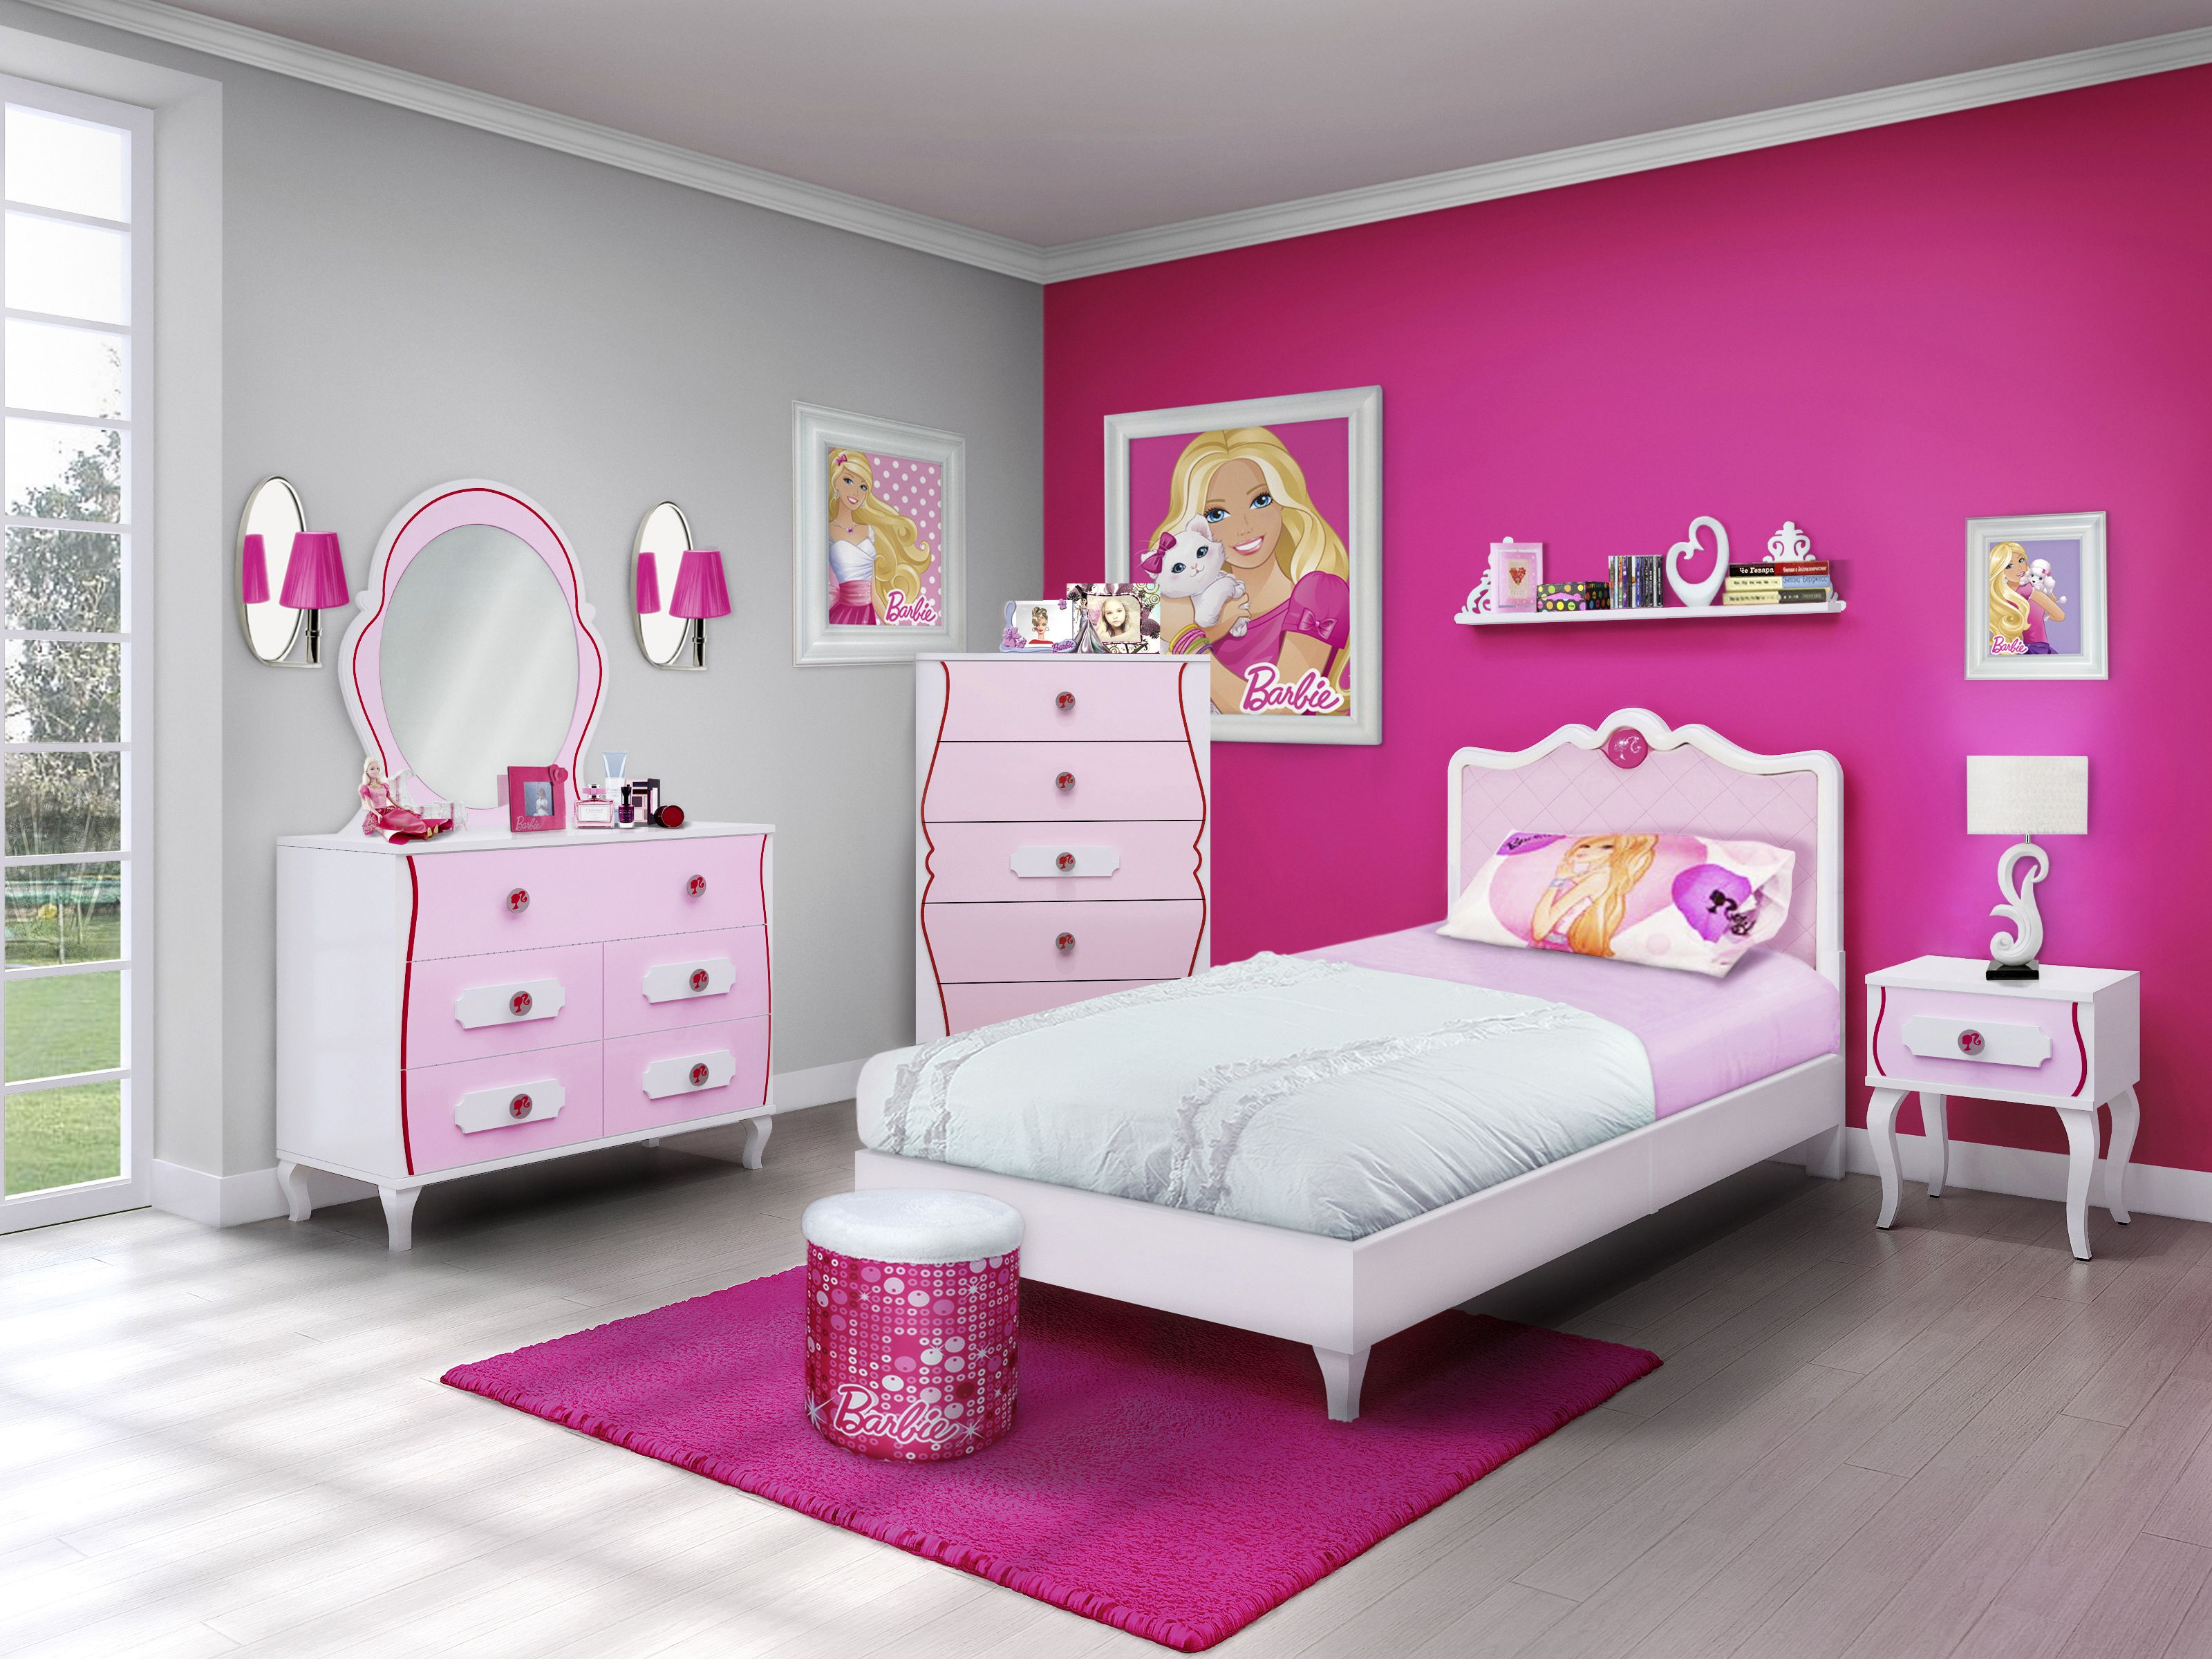 Dormitorio Barbie Barbie Bedroom Girls Room Decorate Decorar Cuarto Niña